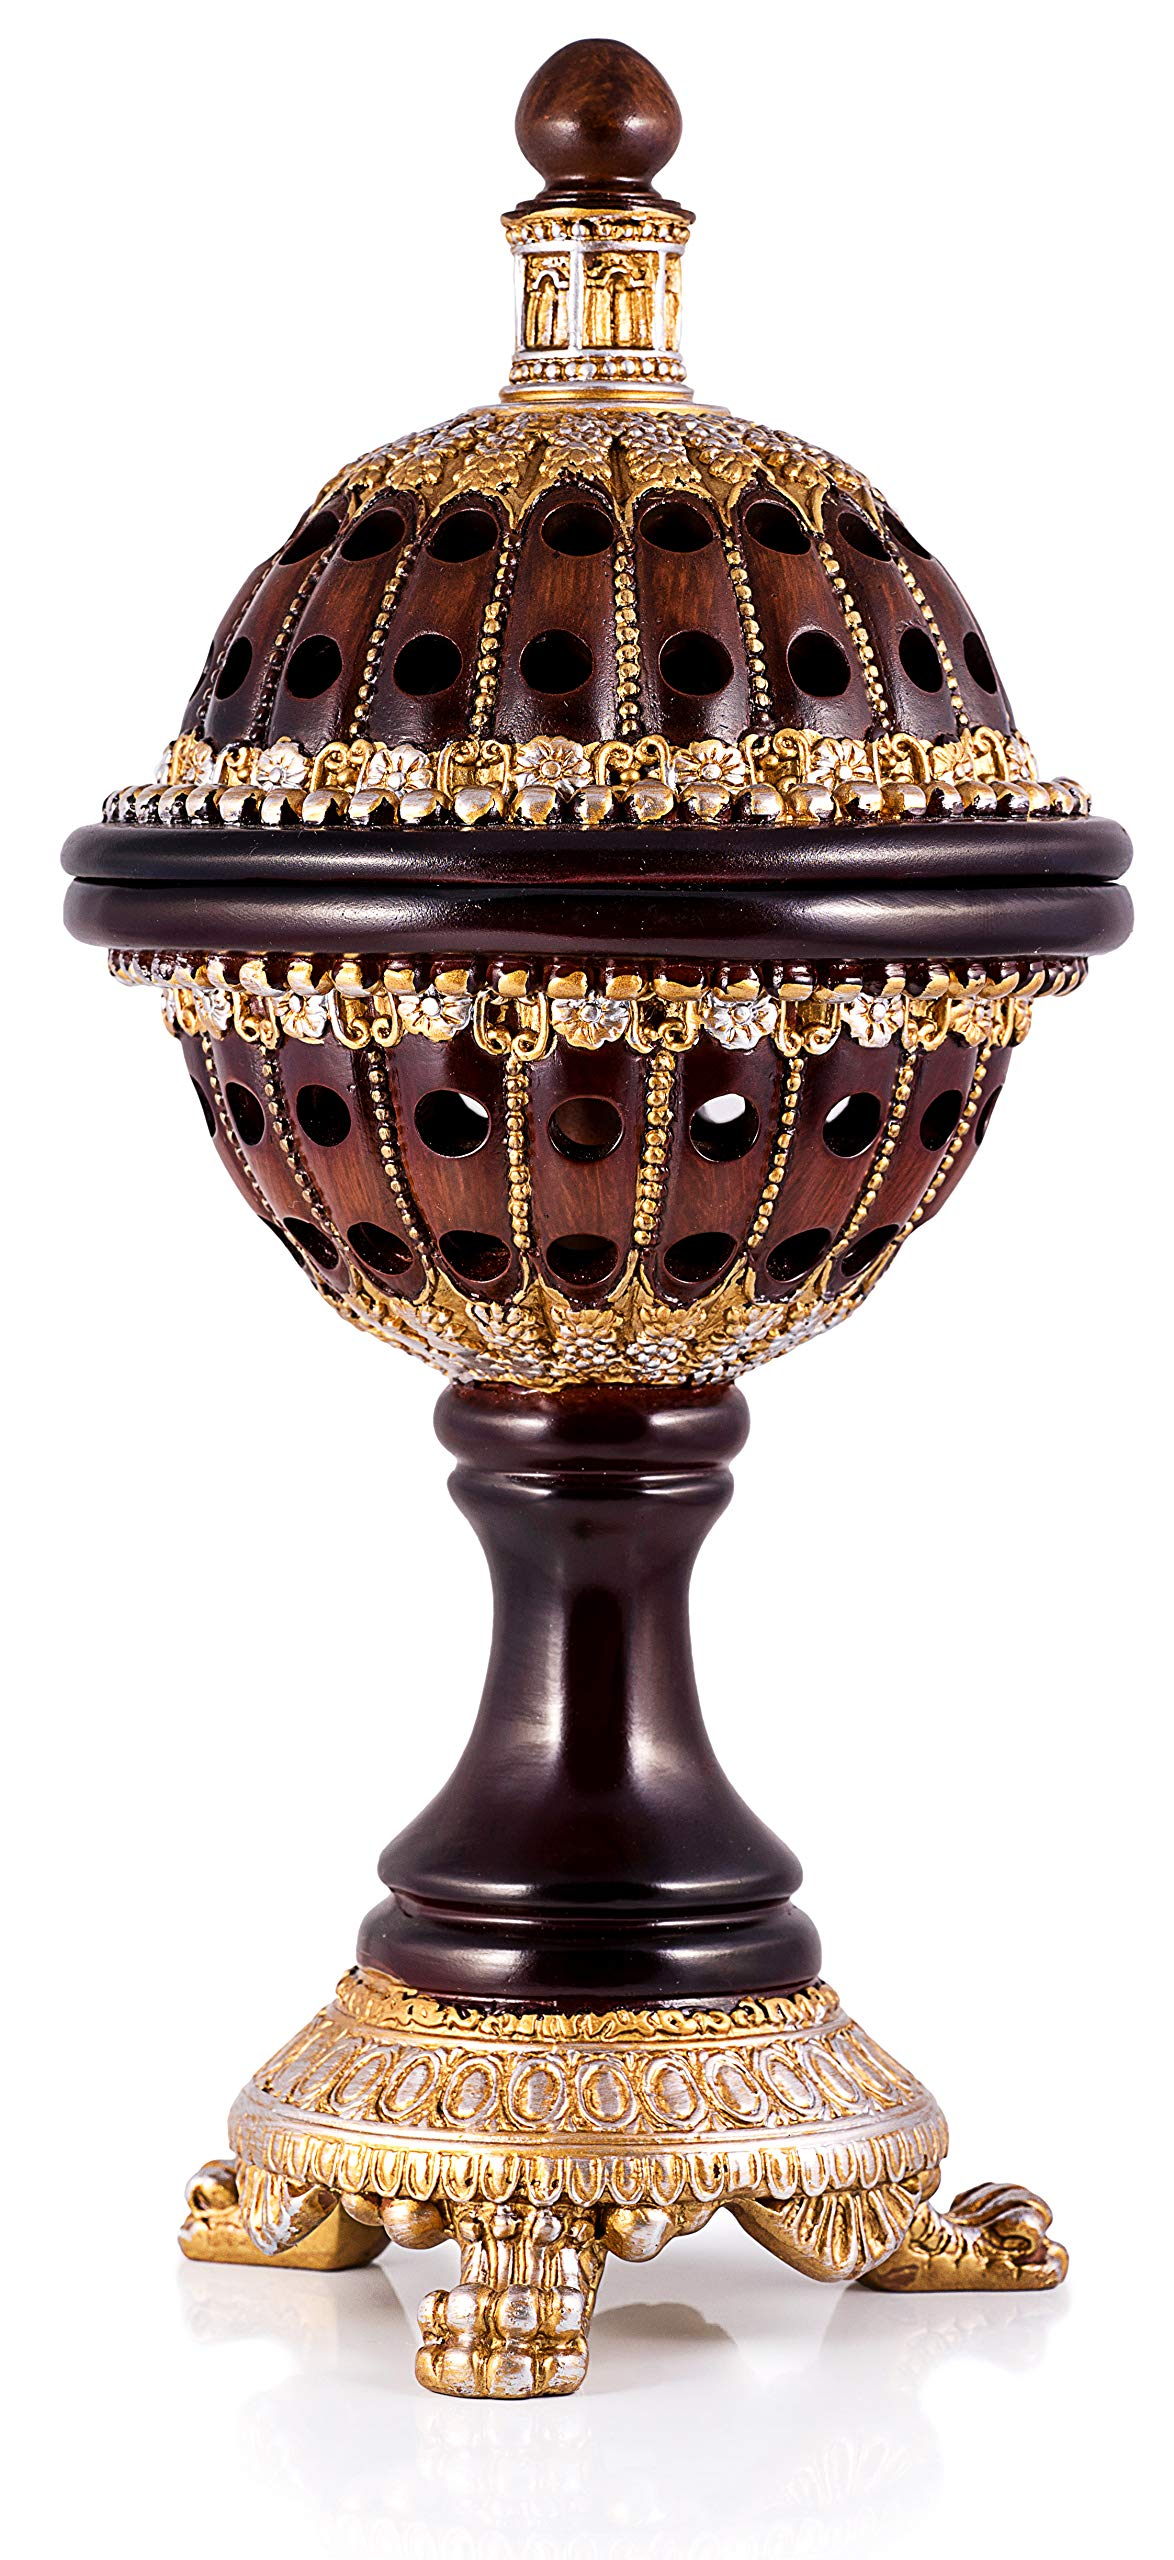 AM Incense Burner Frankincense Resin - Luxury Globe Charcoal Bakhoor Burners For Office & Home Decor by AM (Image #1)